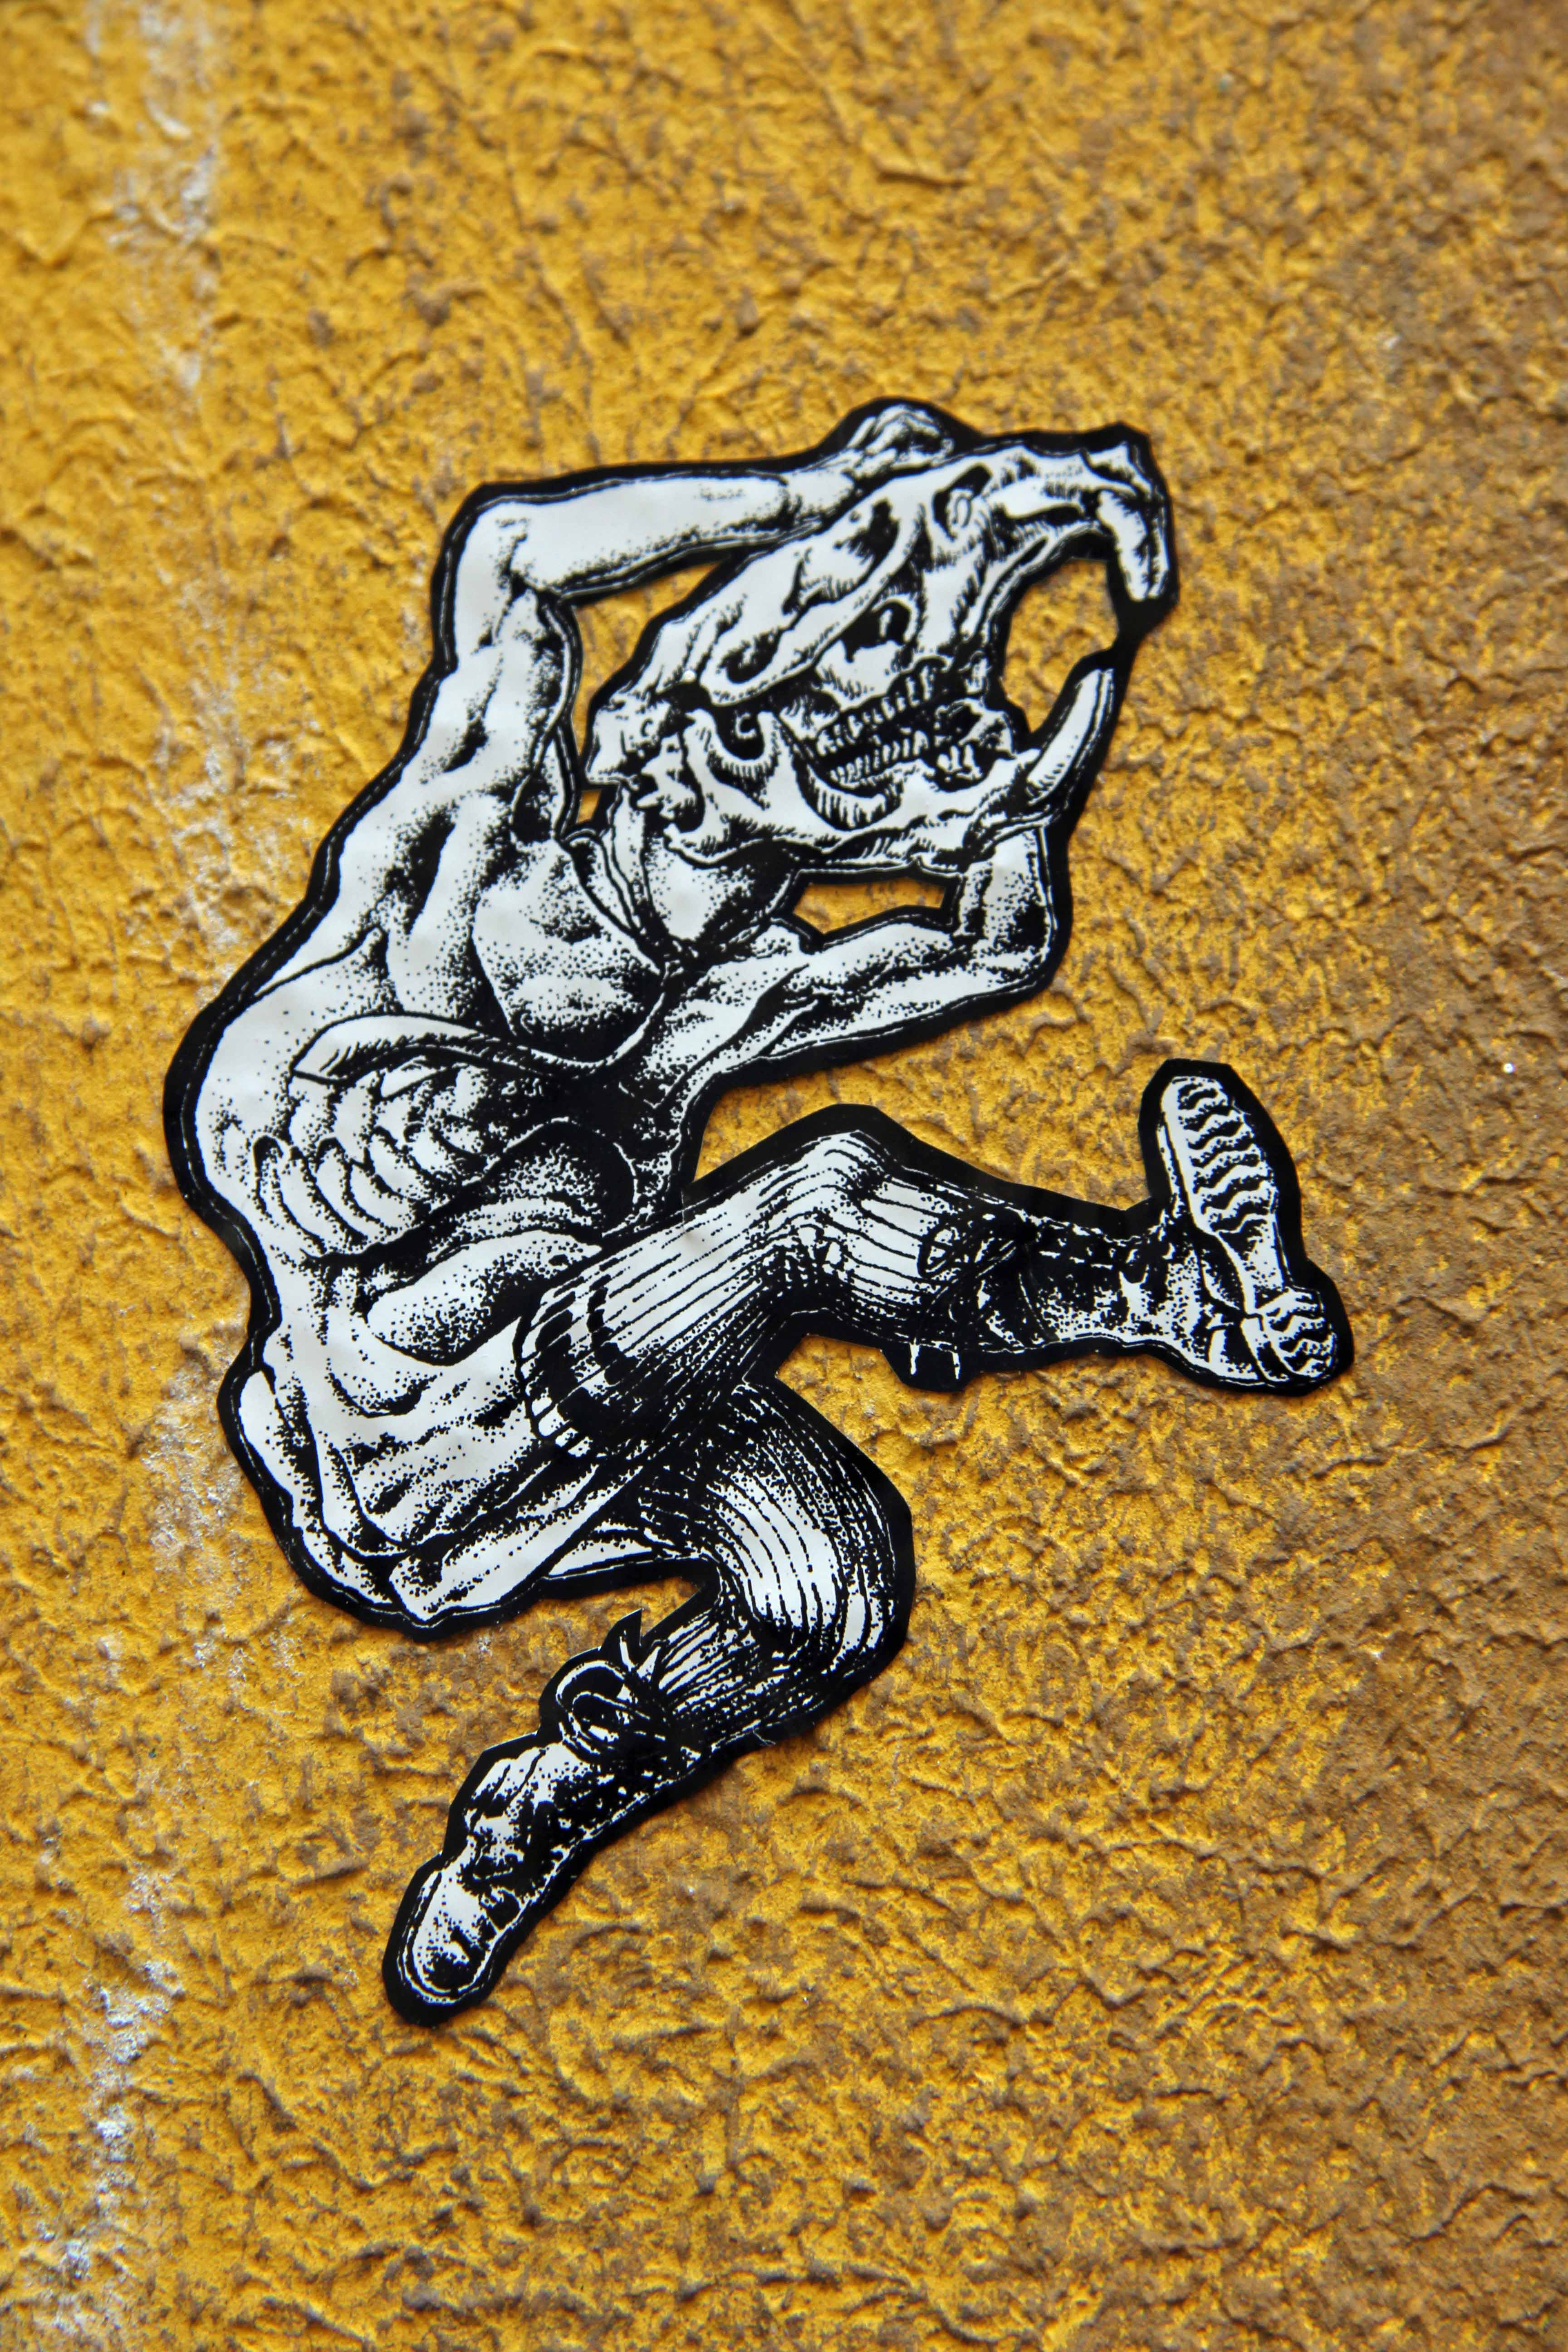 Monster Kick: Street Art by Unknown Artist in Berlin